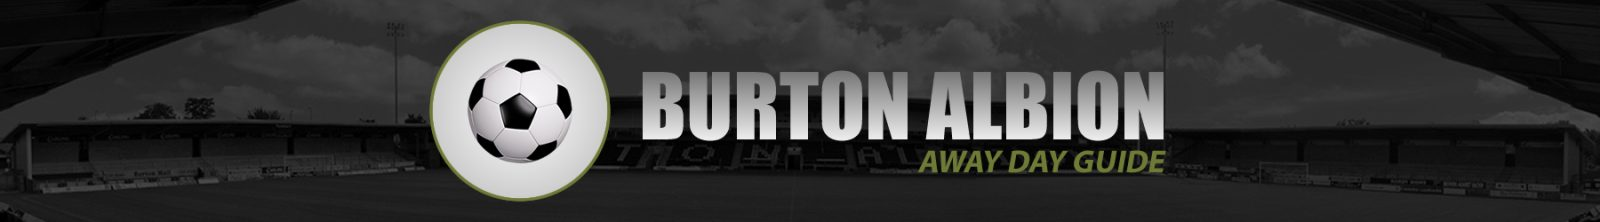 Burton Albion Away